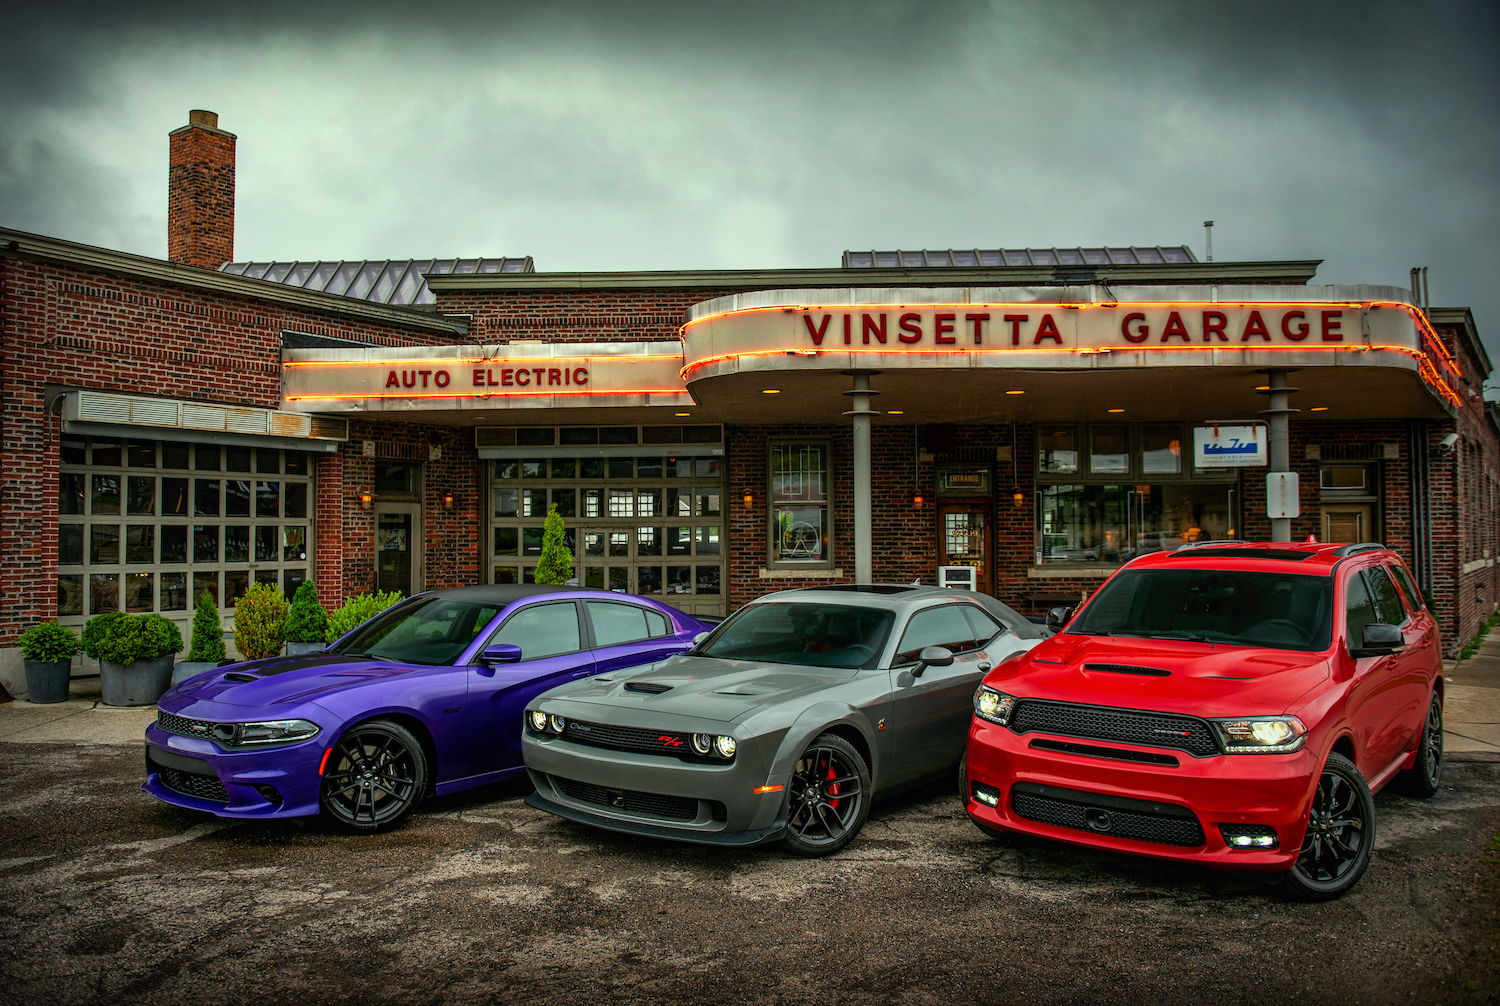 Meanwhile at Dodge, they're celebrating putting 500 million horsepower on the road thumbnail